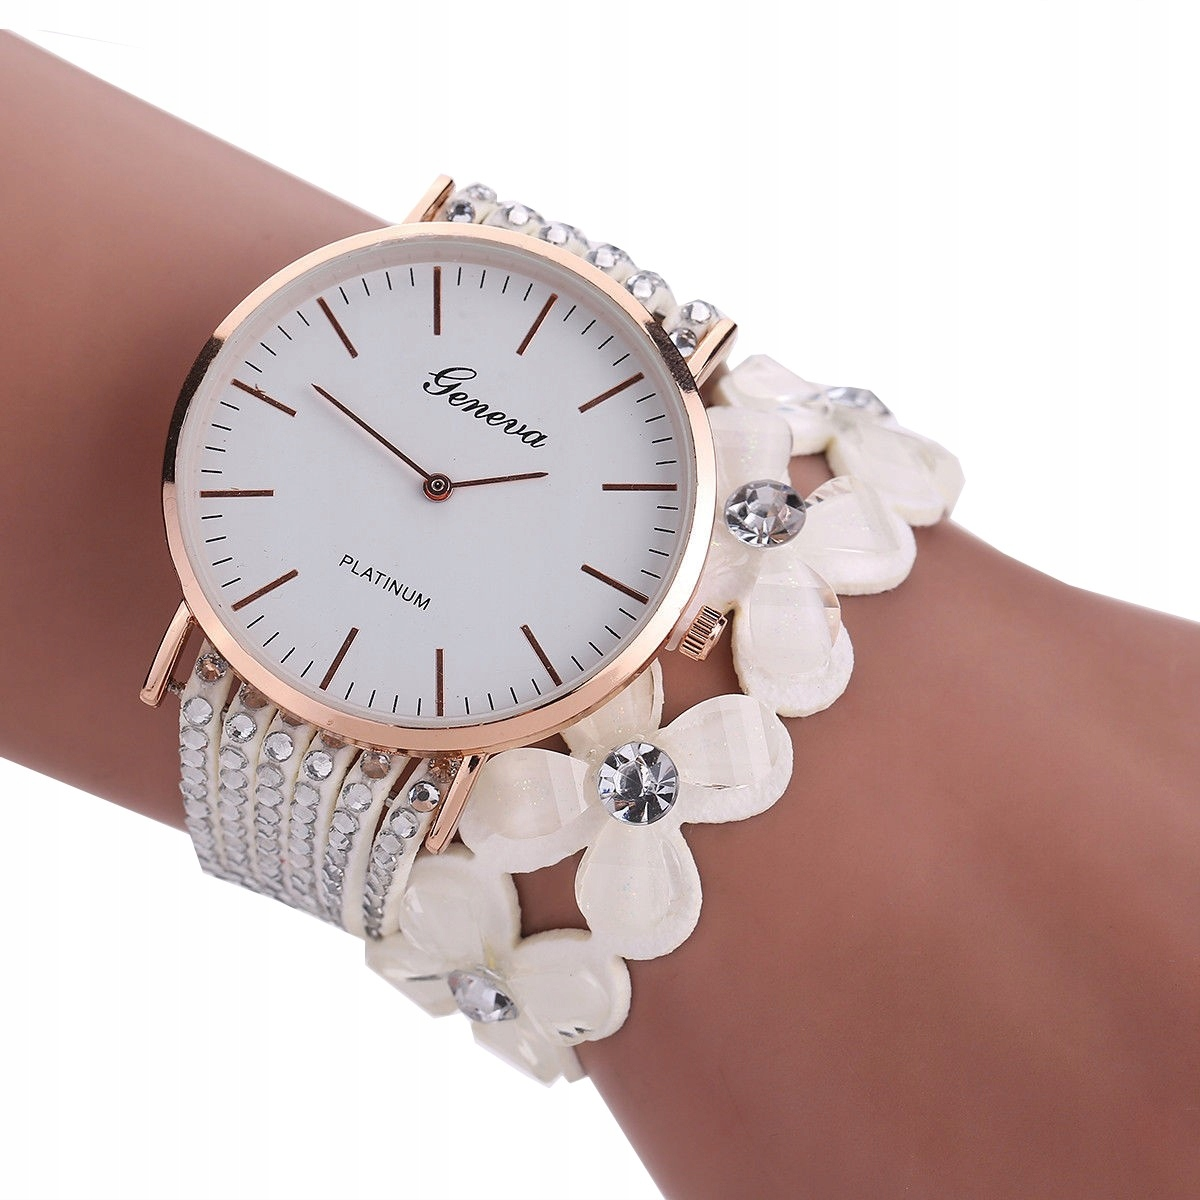 Item WOMEN's WATCH the HAND ON the BRACELET A215 WHITE